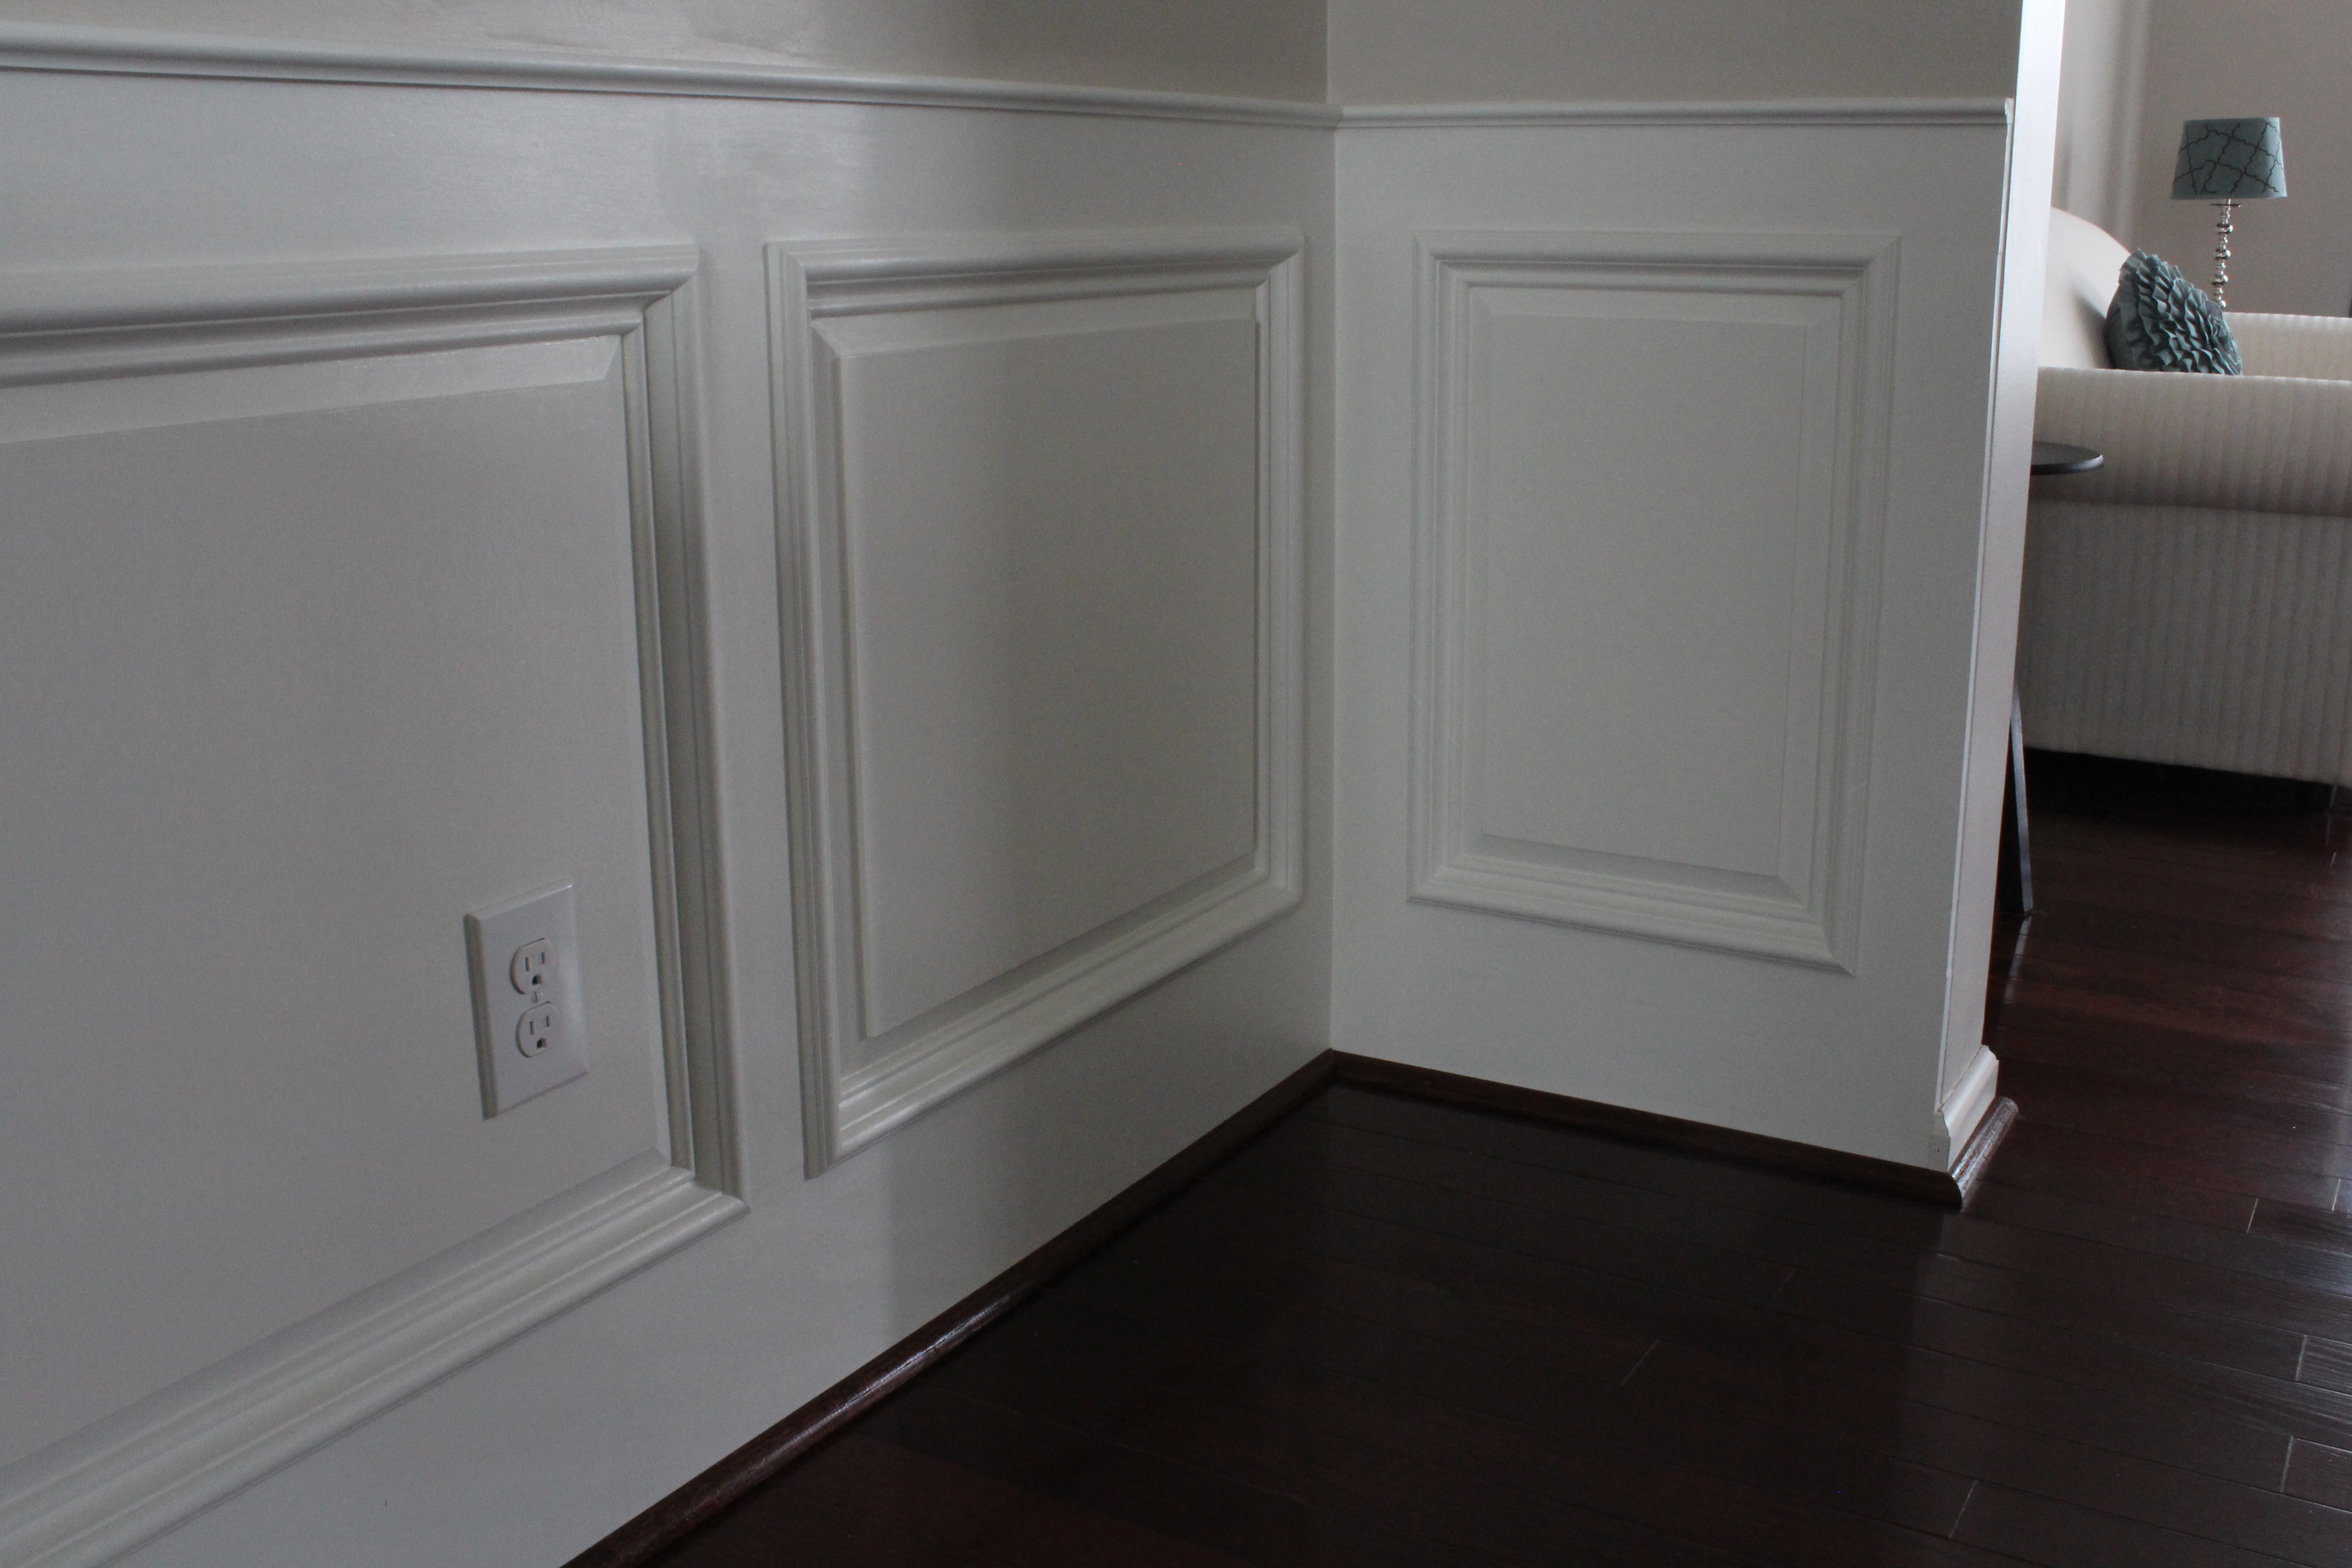 Raised Panel Siding : Wainscoting doorway door molding wainscot i like much